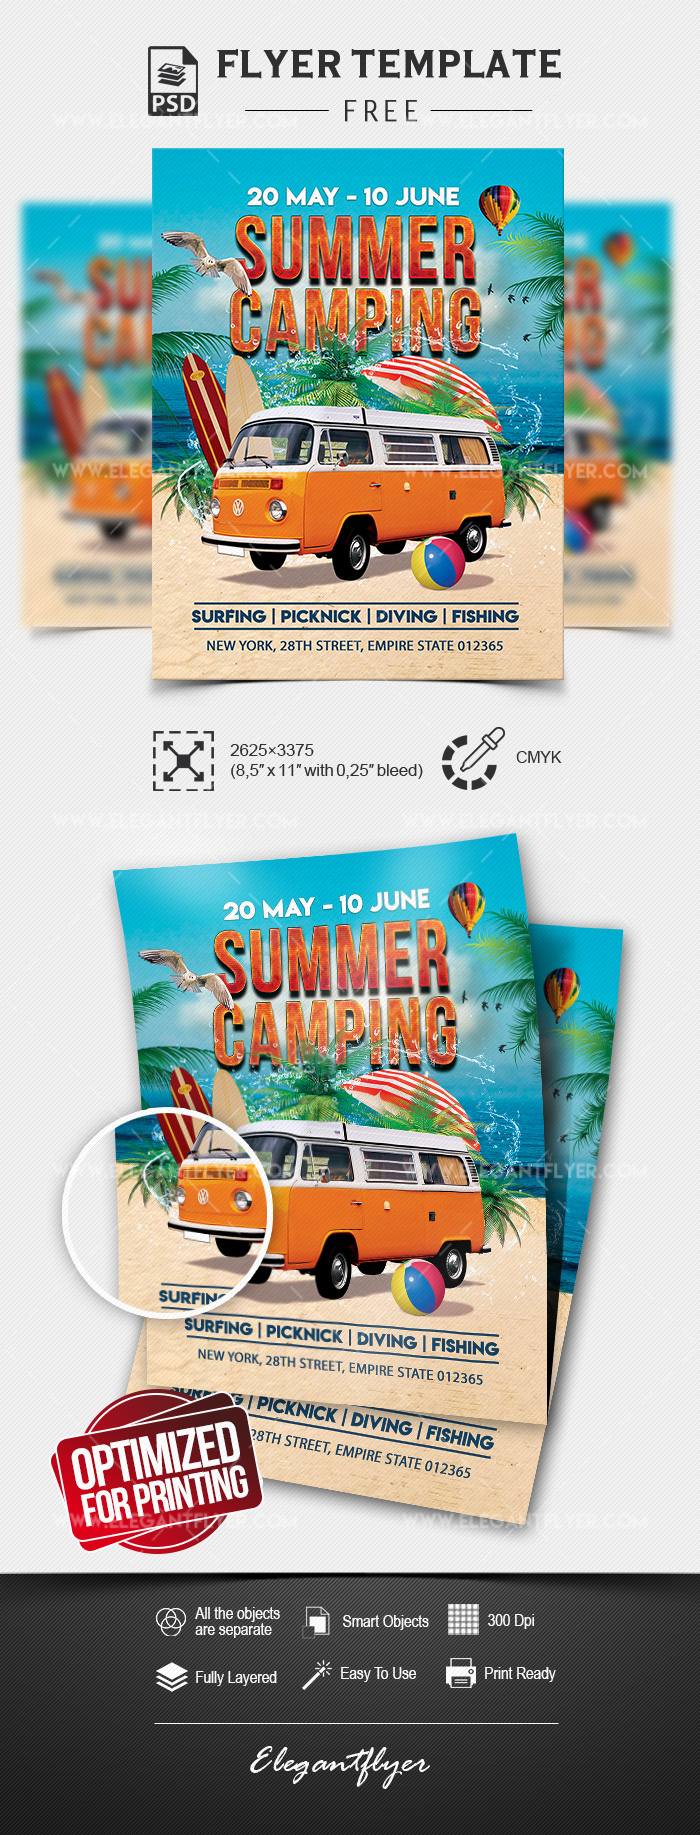 Summer Camping – Free Flyer Template in PSD